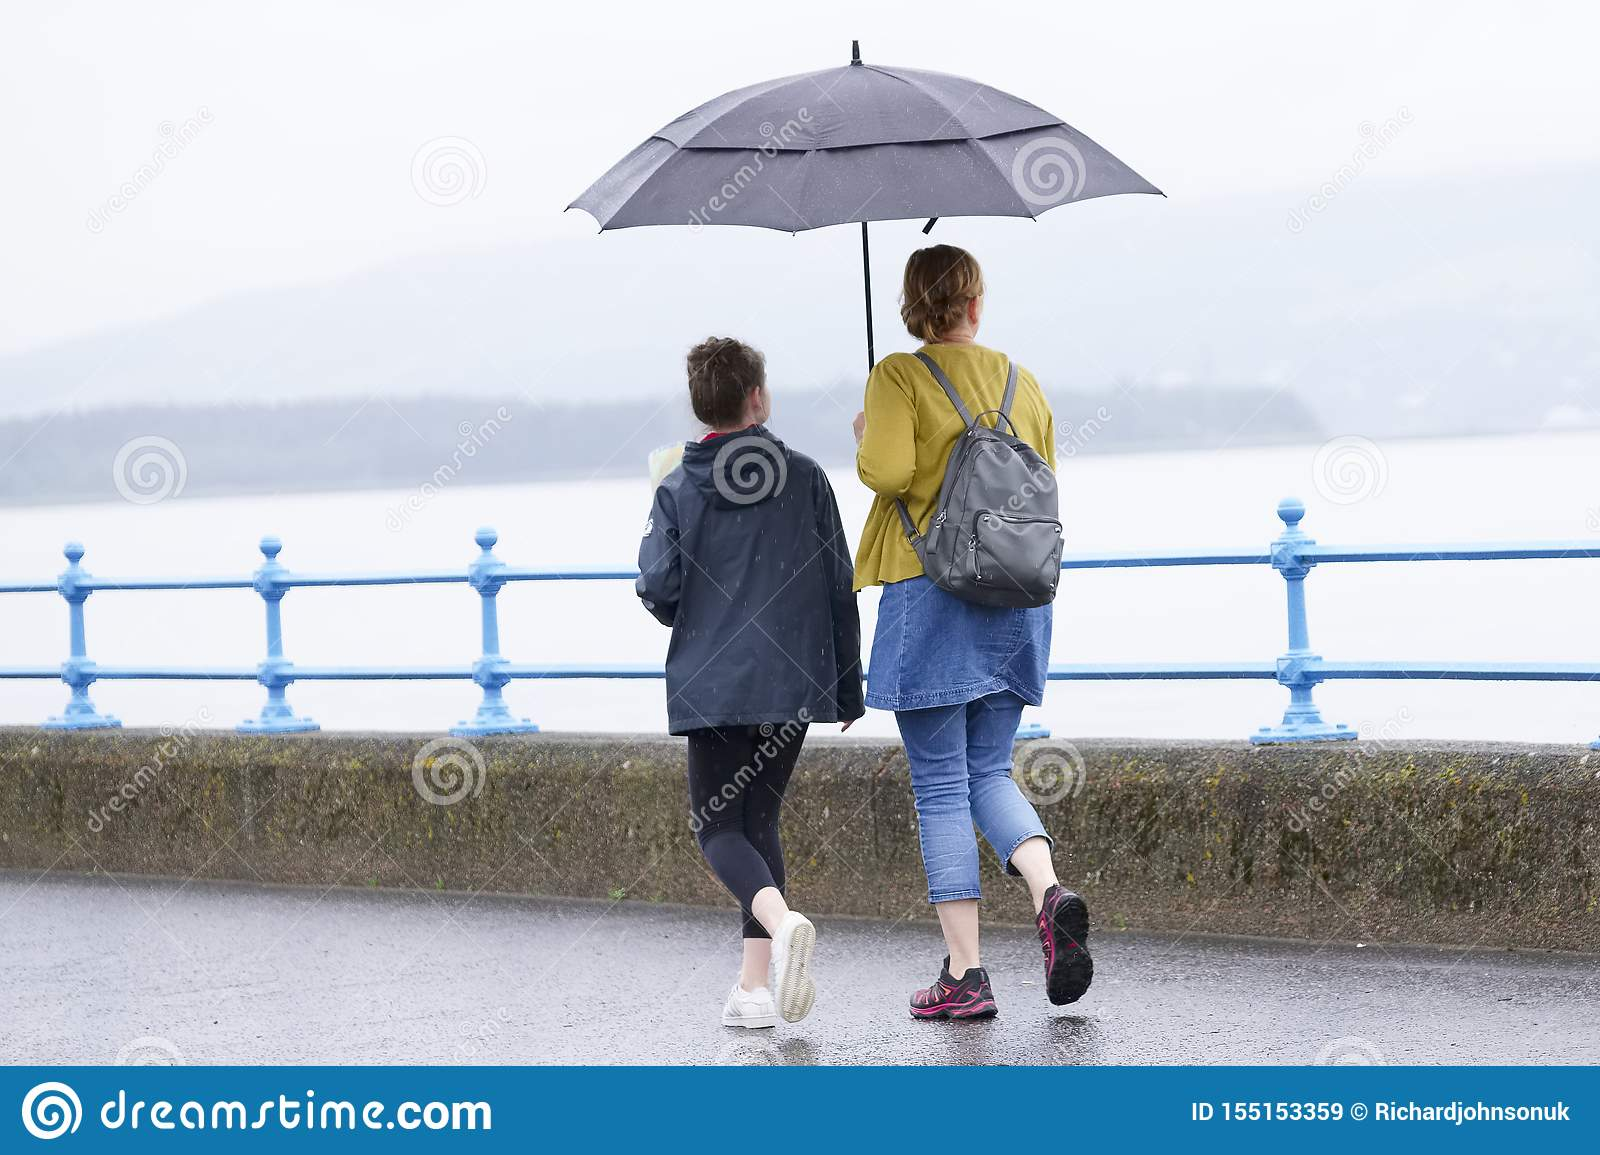 British wet summer umbrella weather with mother and daughter